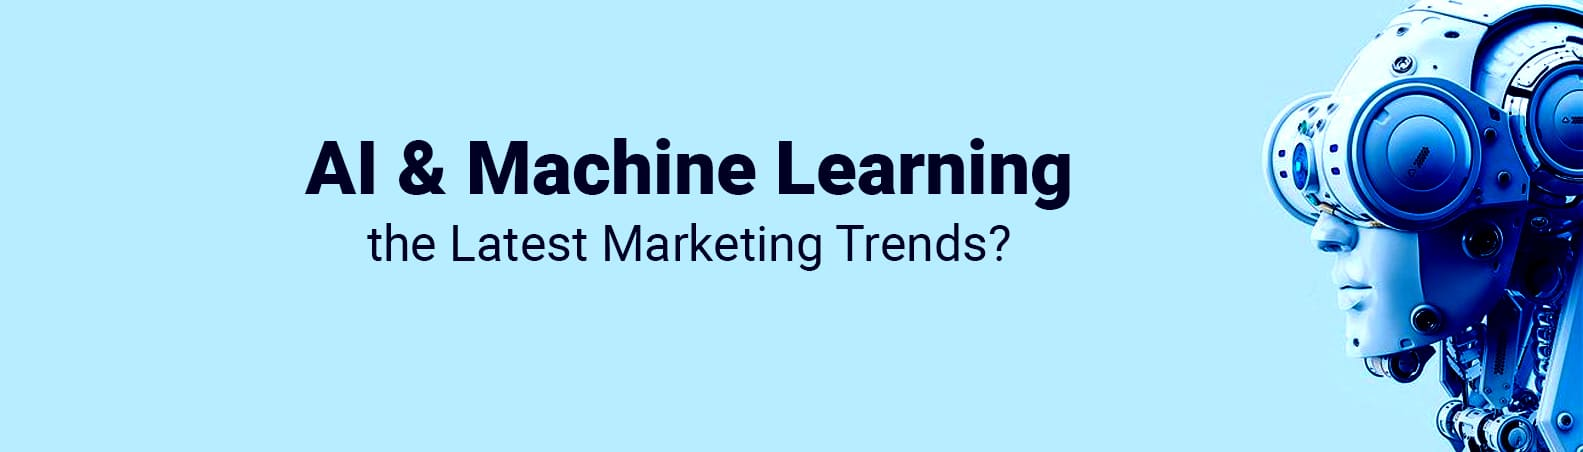 Are Artificial Intelligence & Machine Learning the Latest Marketing Trends?